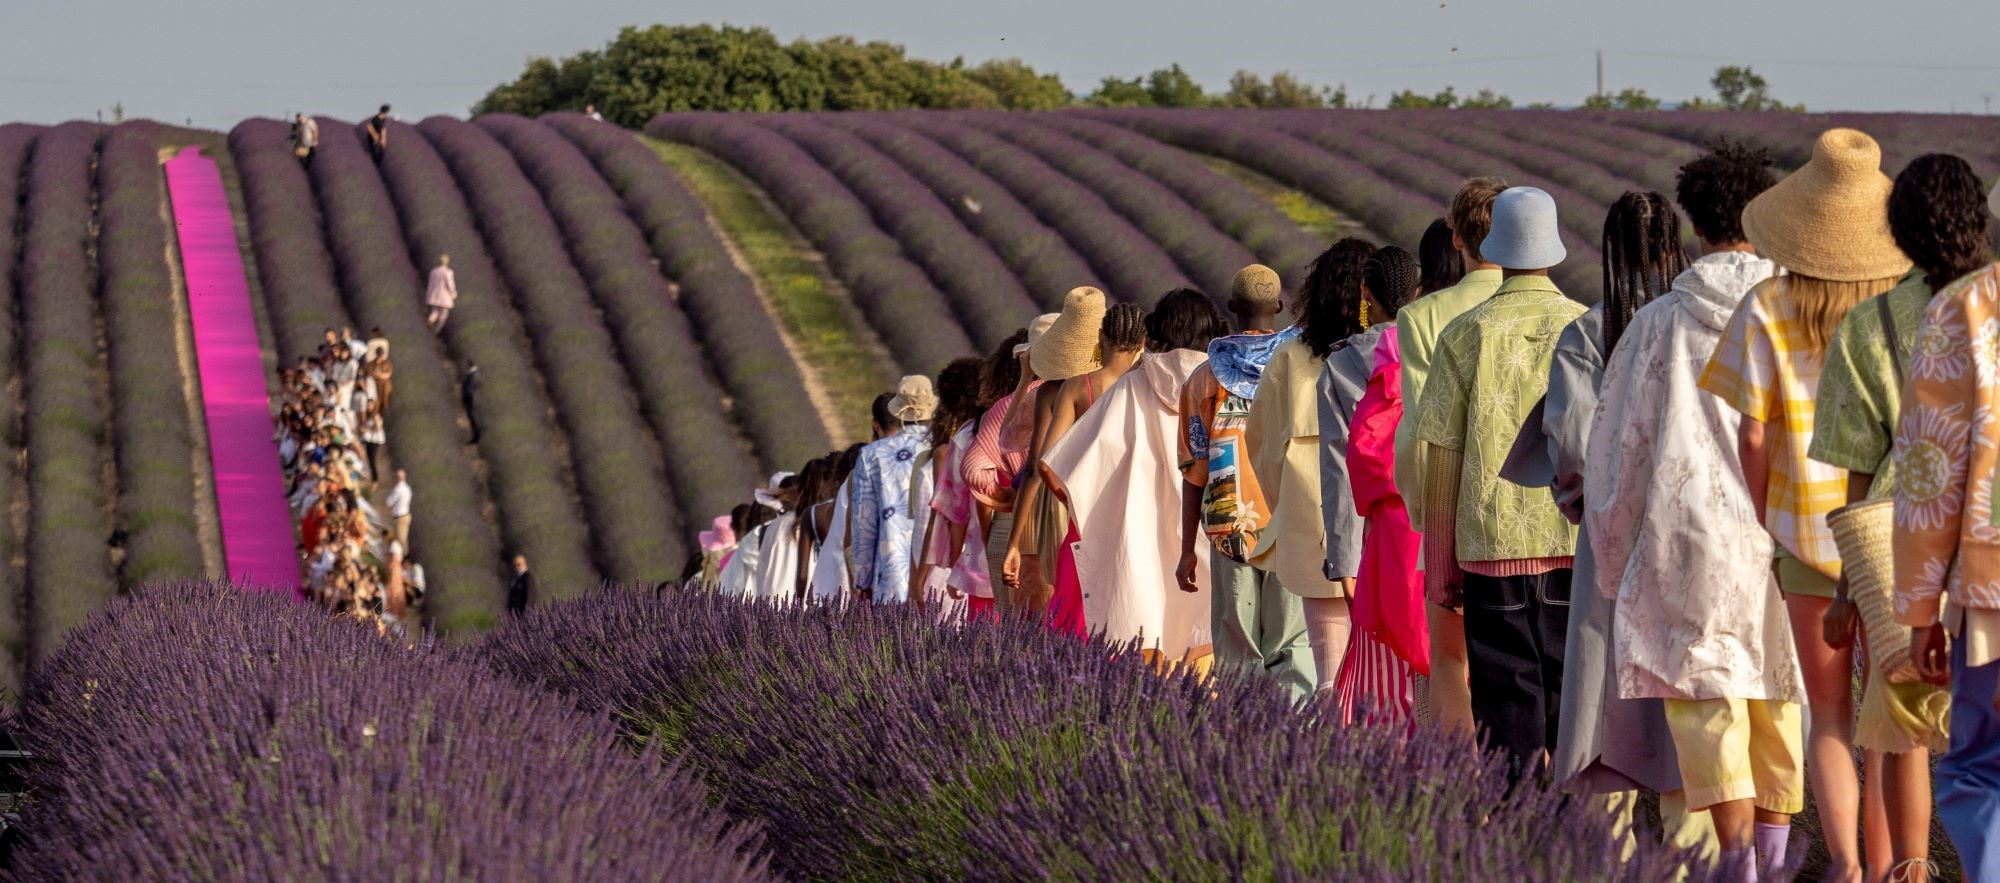 Construction Aix En Provence jacquemus fashion show in the lavender fields of provence